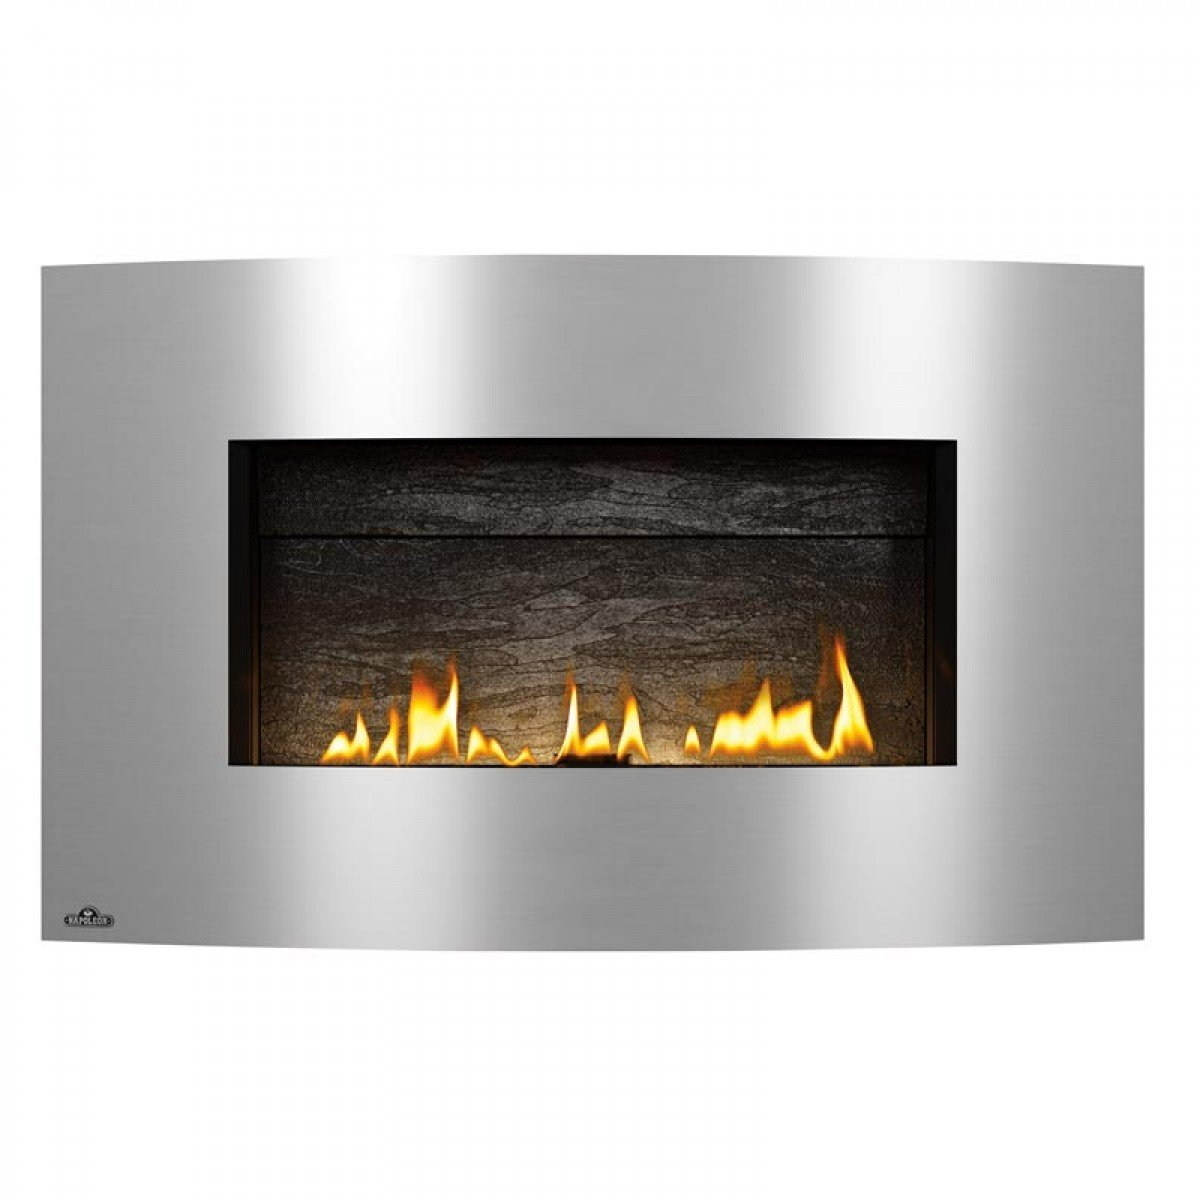 amazon com napoleon whd31n 20000 btu plazmafire wall hanging